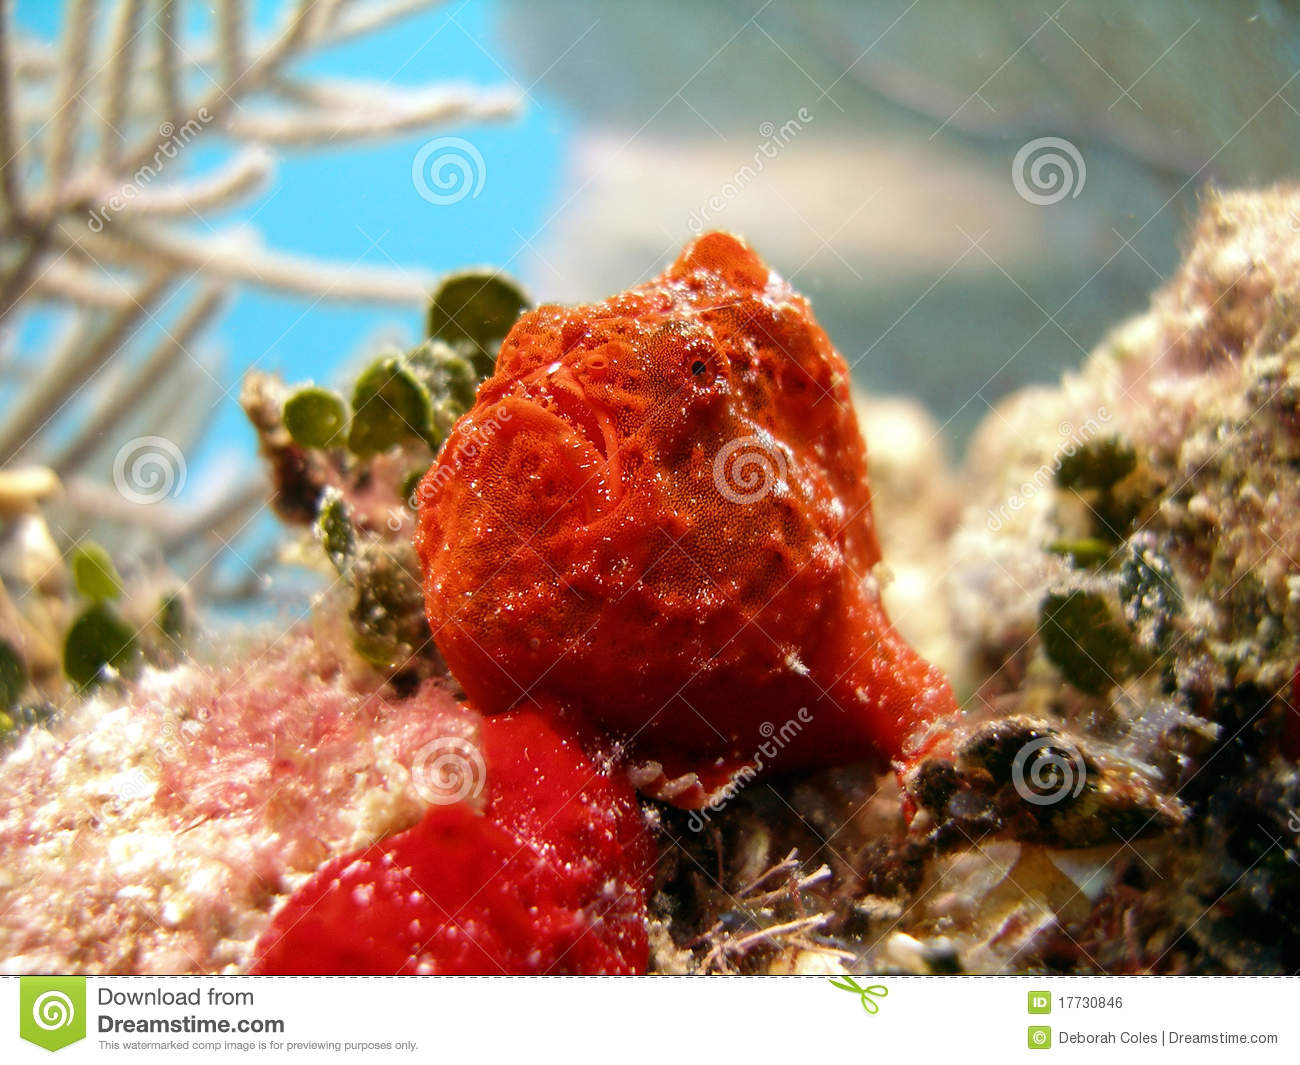 Frog Fish or Angler Fish stock photo. Image of exotic - 17730846